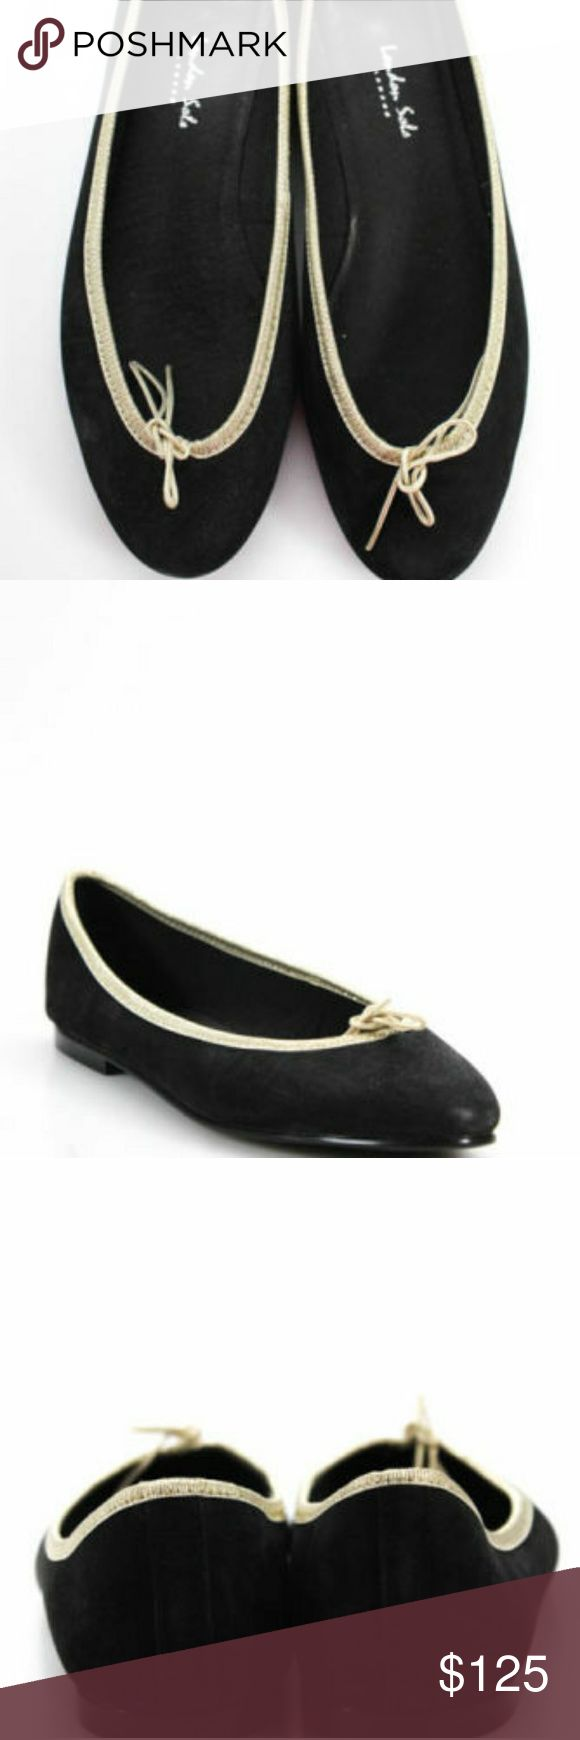 London Sole black gold ballet flats 40 in box Black suede with gold piping ballet flats. Worn once. Runs small..it says 40 but would best fit a 9 or 9 and a half with narrow to medium width London Sole Shoes Flats & Loafers